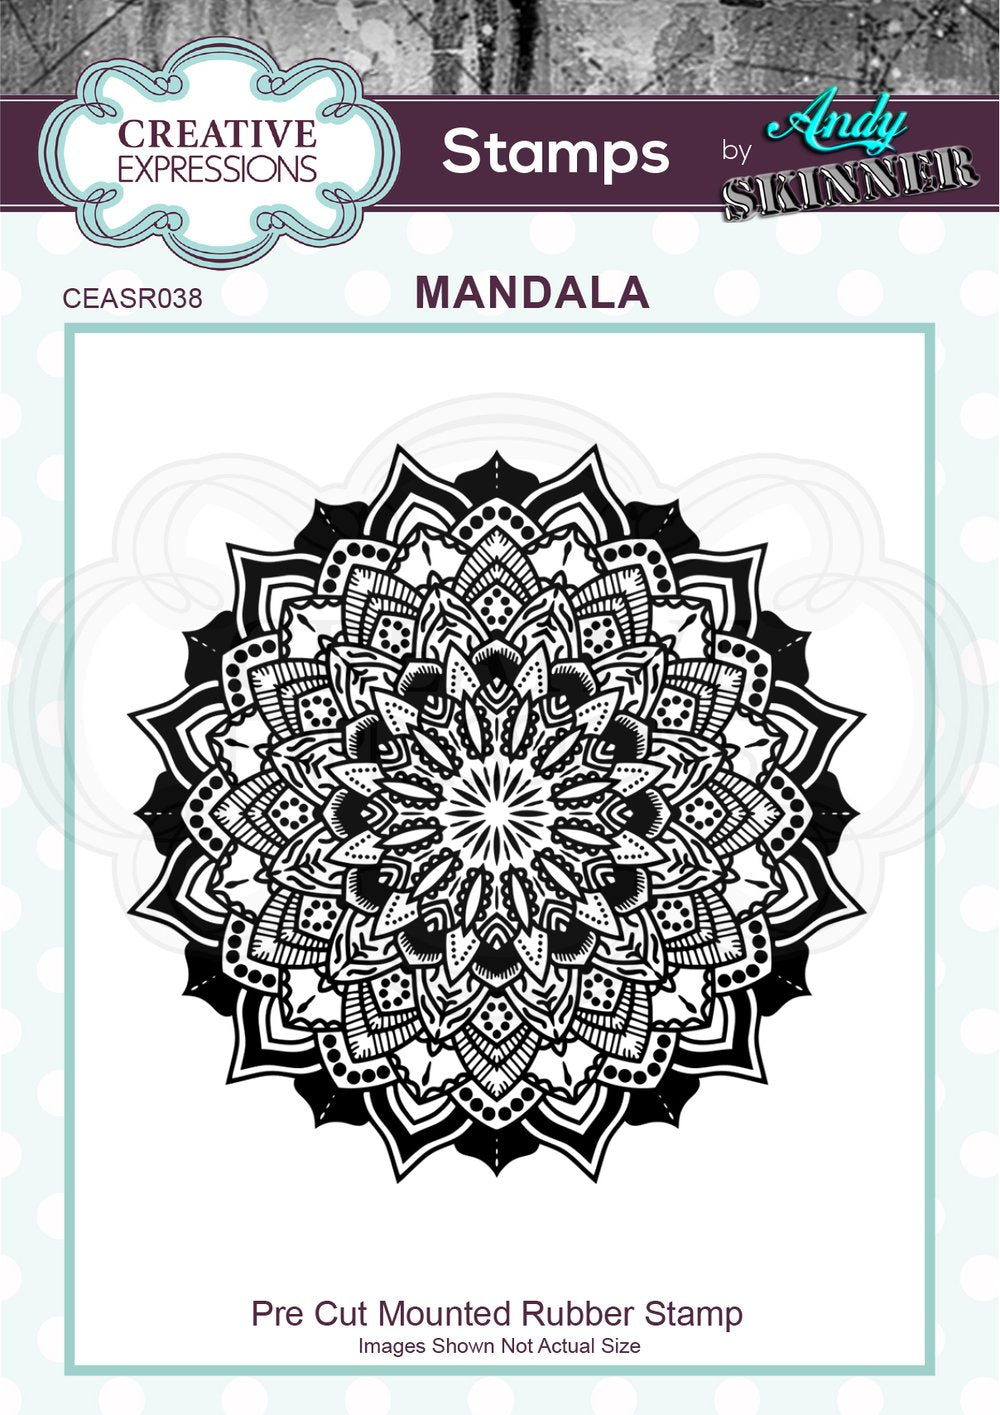 Creative Expressions - Rubber Cling Stamp - Andy Skinner - Mandala